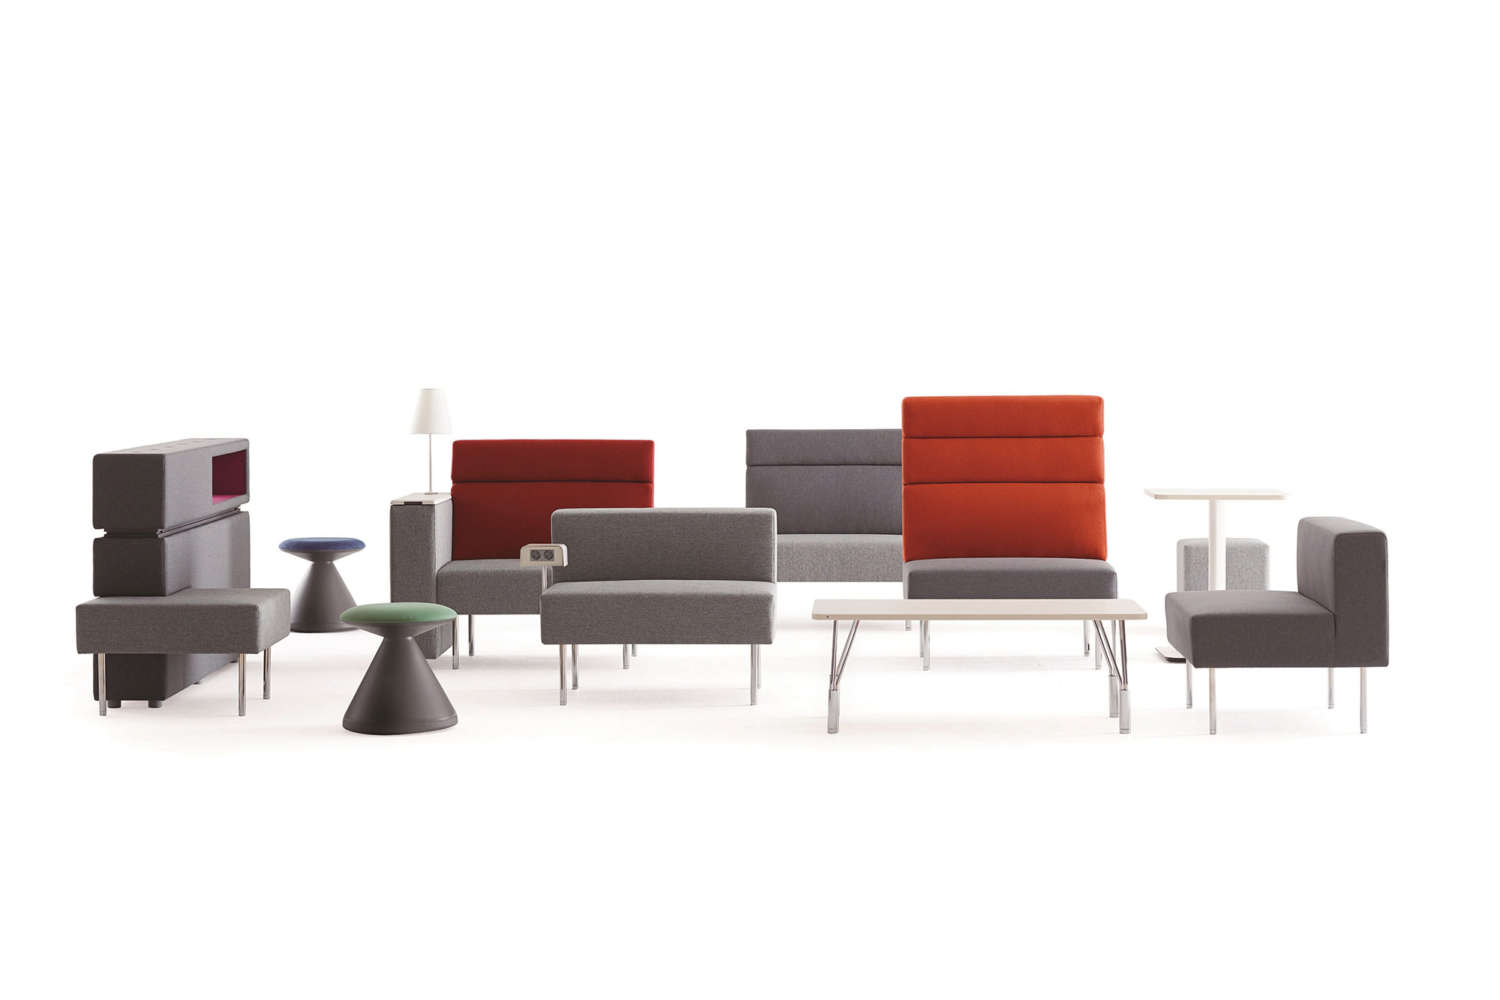 Commercial seating and stools by Square